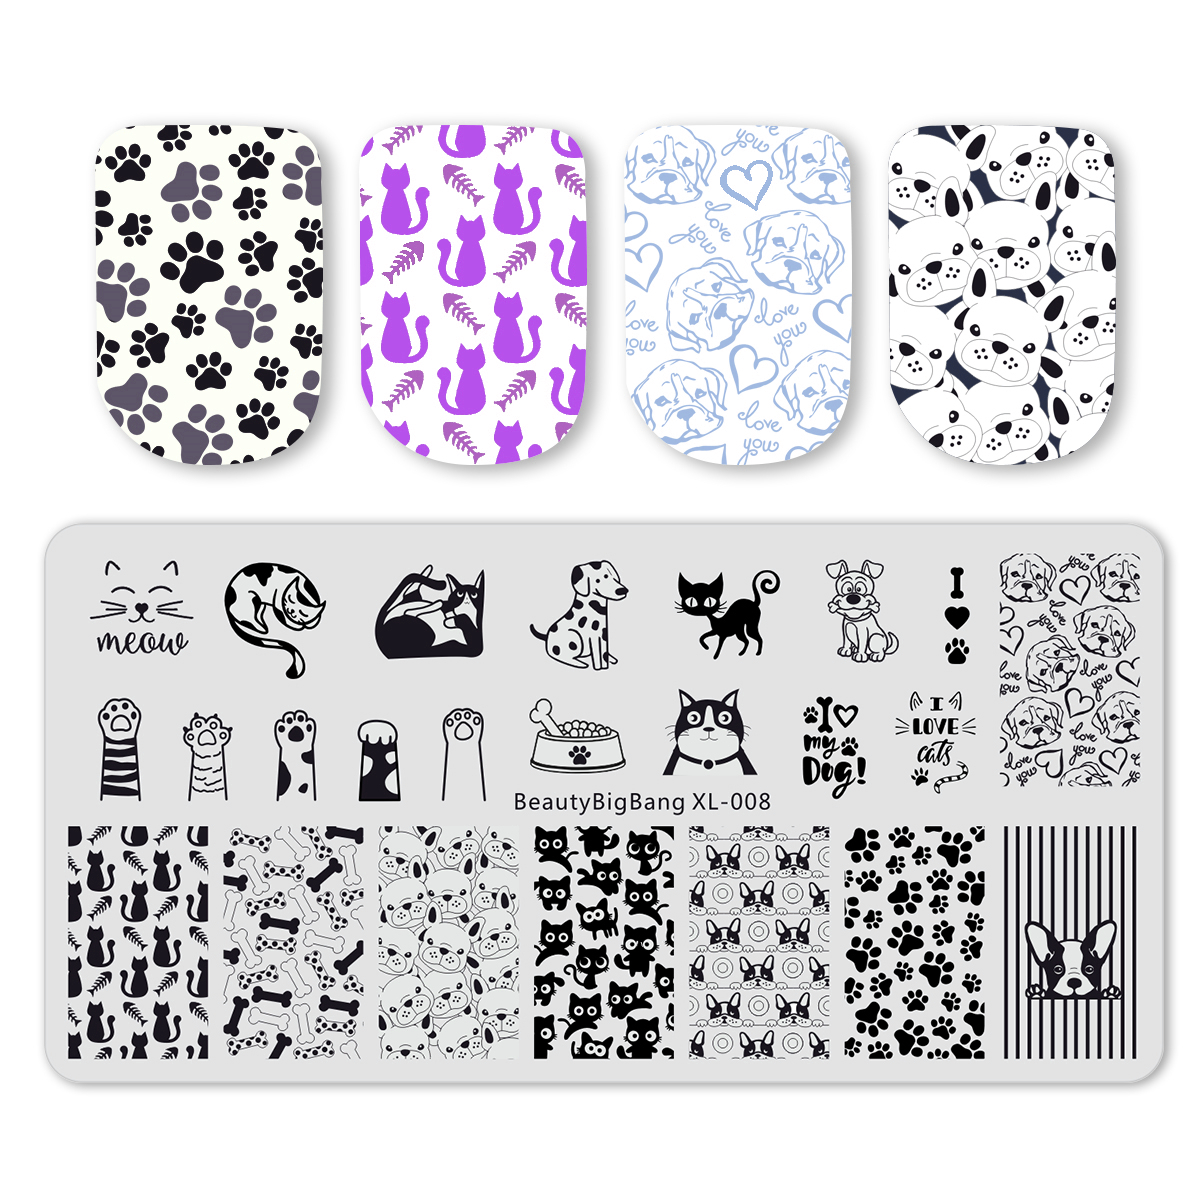 Image 2 - BeautyBigBang 6*12cm Stamping For Nails Cat Dog Image Plate Nail Stamping Plates Nail Art Template Mold BBB XL 008-in Nail Art Templates from Beauty & Health